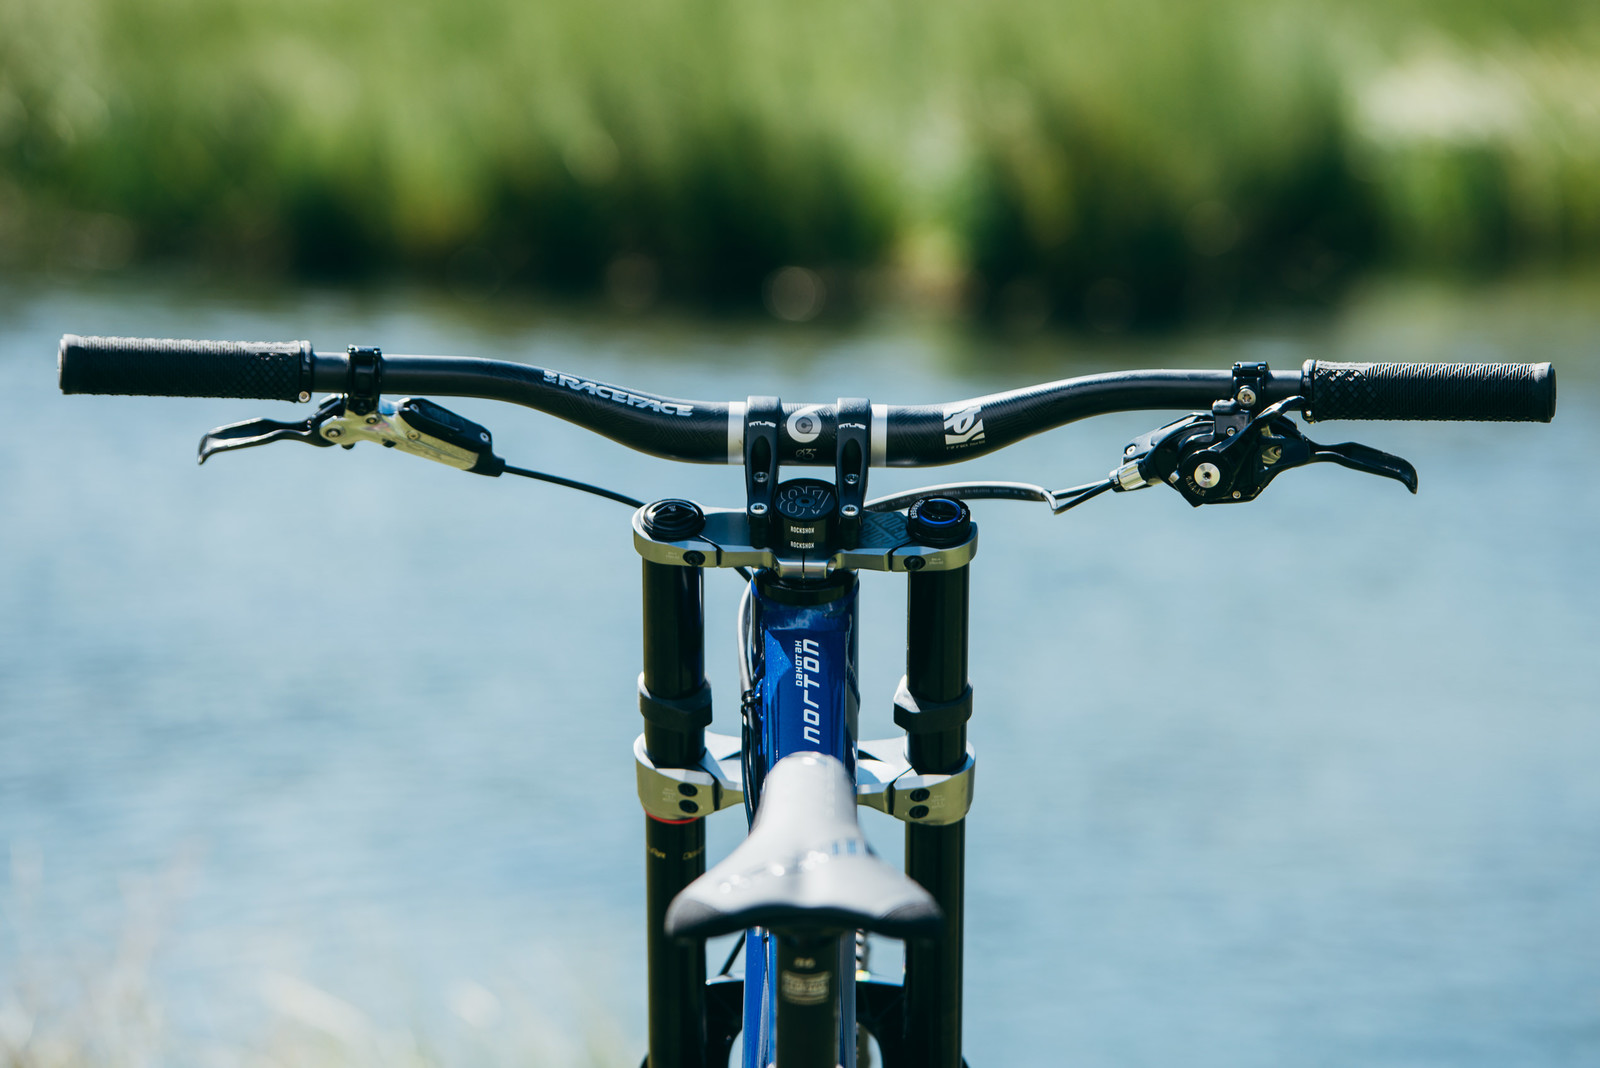 Check Out That Cockpit - WORLD CHAMPS BIKES - Unior/Devinci Factory Racing - Mountain Biking Pictures - Vital MTB